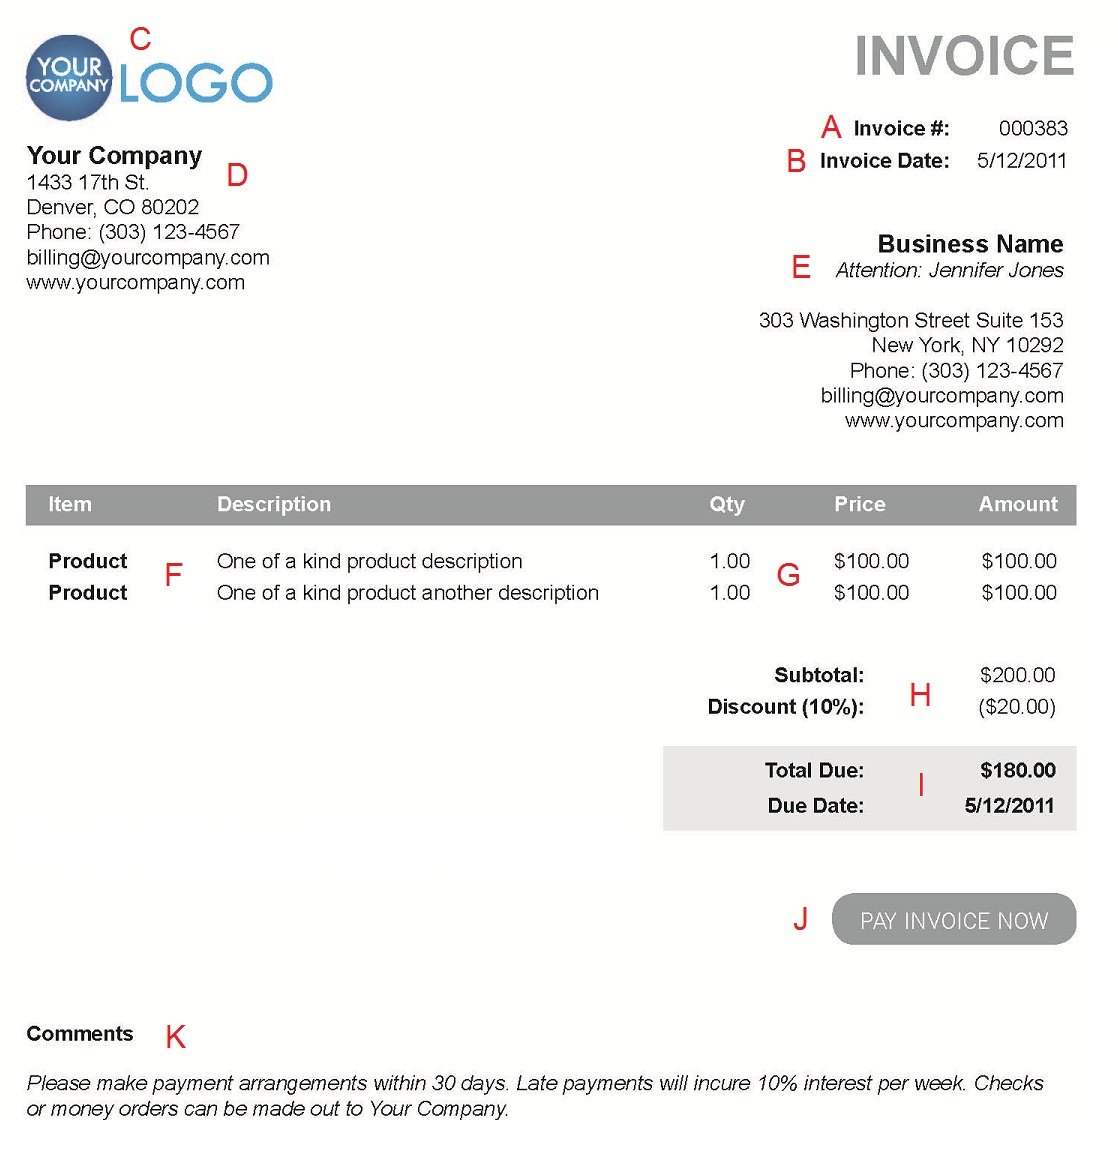 Soulfulpowerus  Winsome The  Different Sections Of An Electronic Payment Invoice With Marvelous A  With Easy On The Eye Cash Receipt Doc Also How To Make A Receipt Template In Addition Cookies Receipt And Lic Premium Receipt Statement As Well As Please Confirm Receipt Of Payment Additionally Car Sales Receipt Template Uk From Paysimplecom With Soulfulpowerus  Marvelous The  Different Sections Of An Electronic Payment Invoice With Easy On The Eye A  And Winsome Cash Receipt Doc Also How To Make A Receipt Template In Addition Cookies Receipt From Paysimplecom